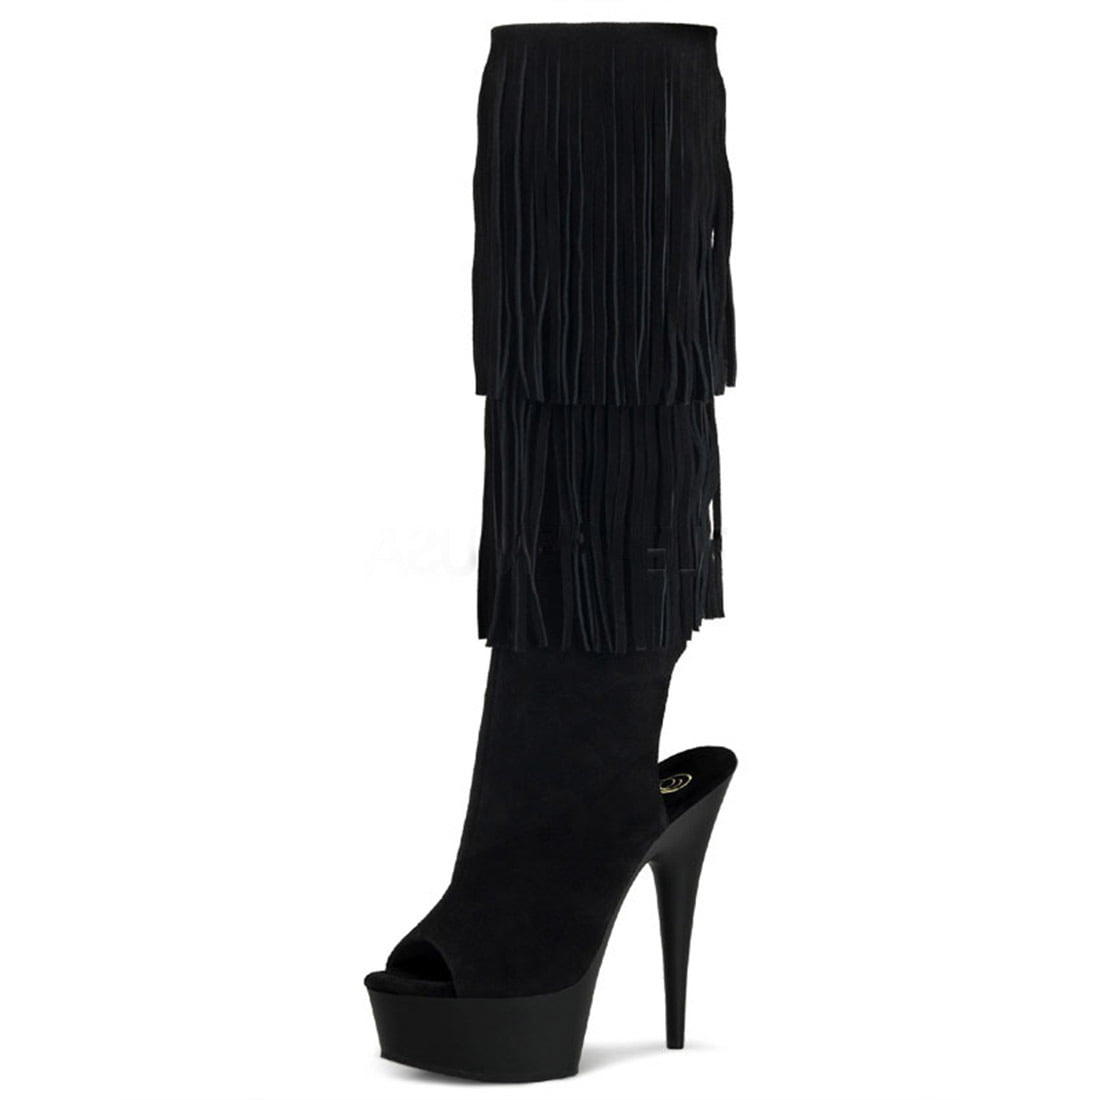 Fringed Knee High Black Suede Boots with Open Back Peep Toe and 6 Inch Heels